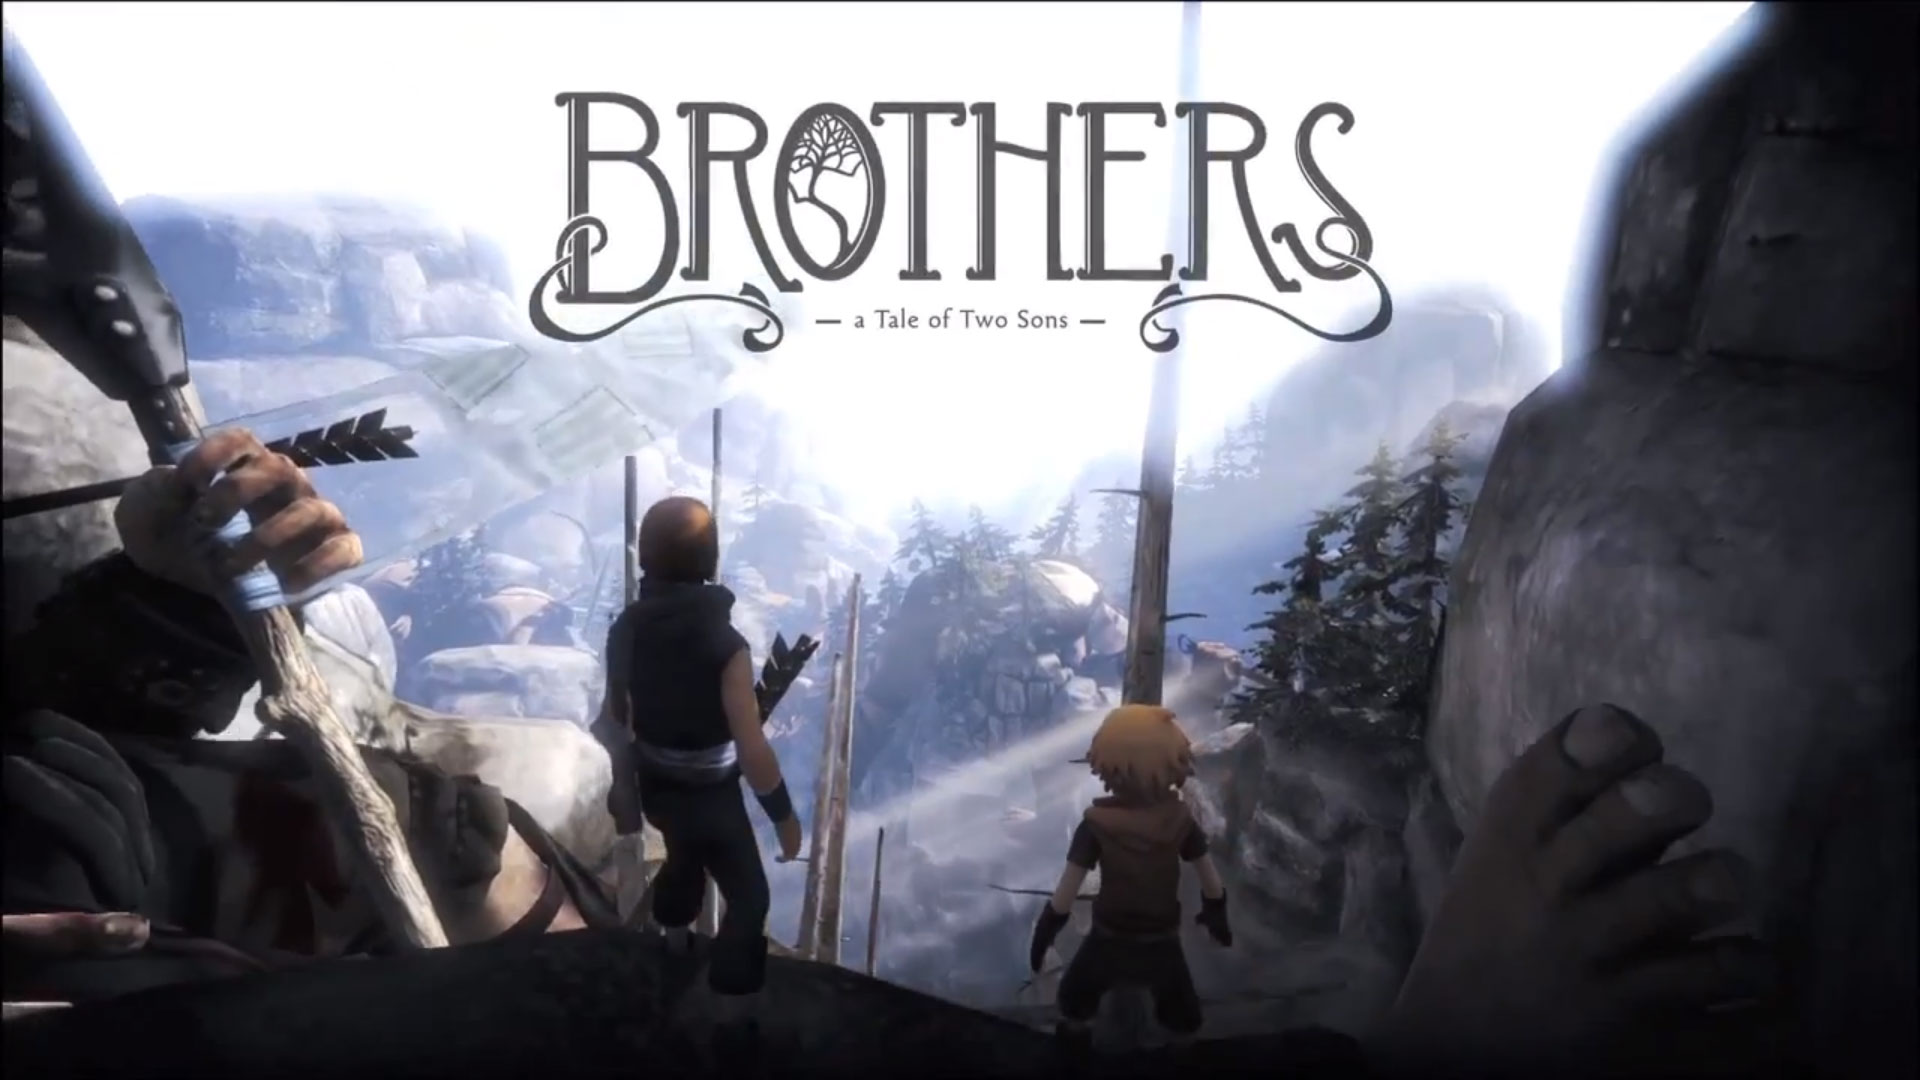 Download-brothers-a-tale-of-two-sons.jpg